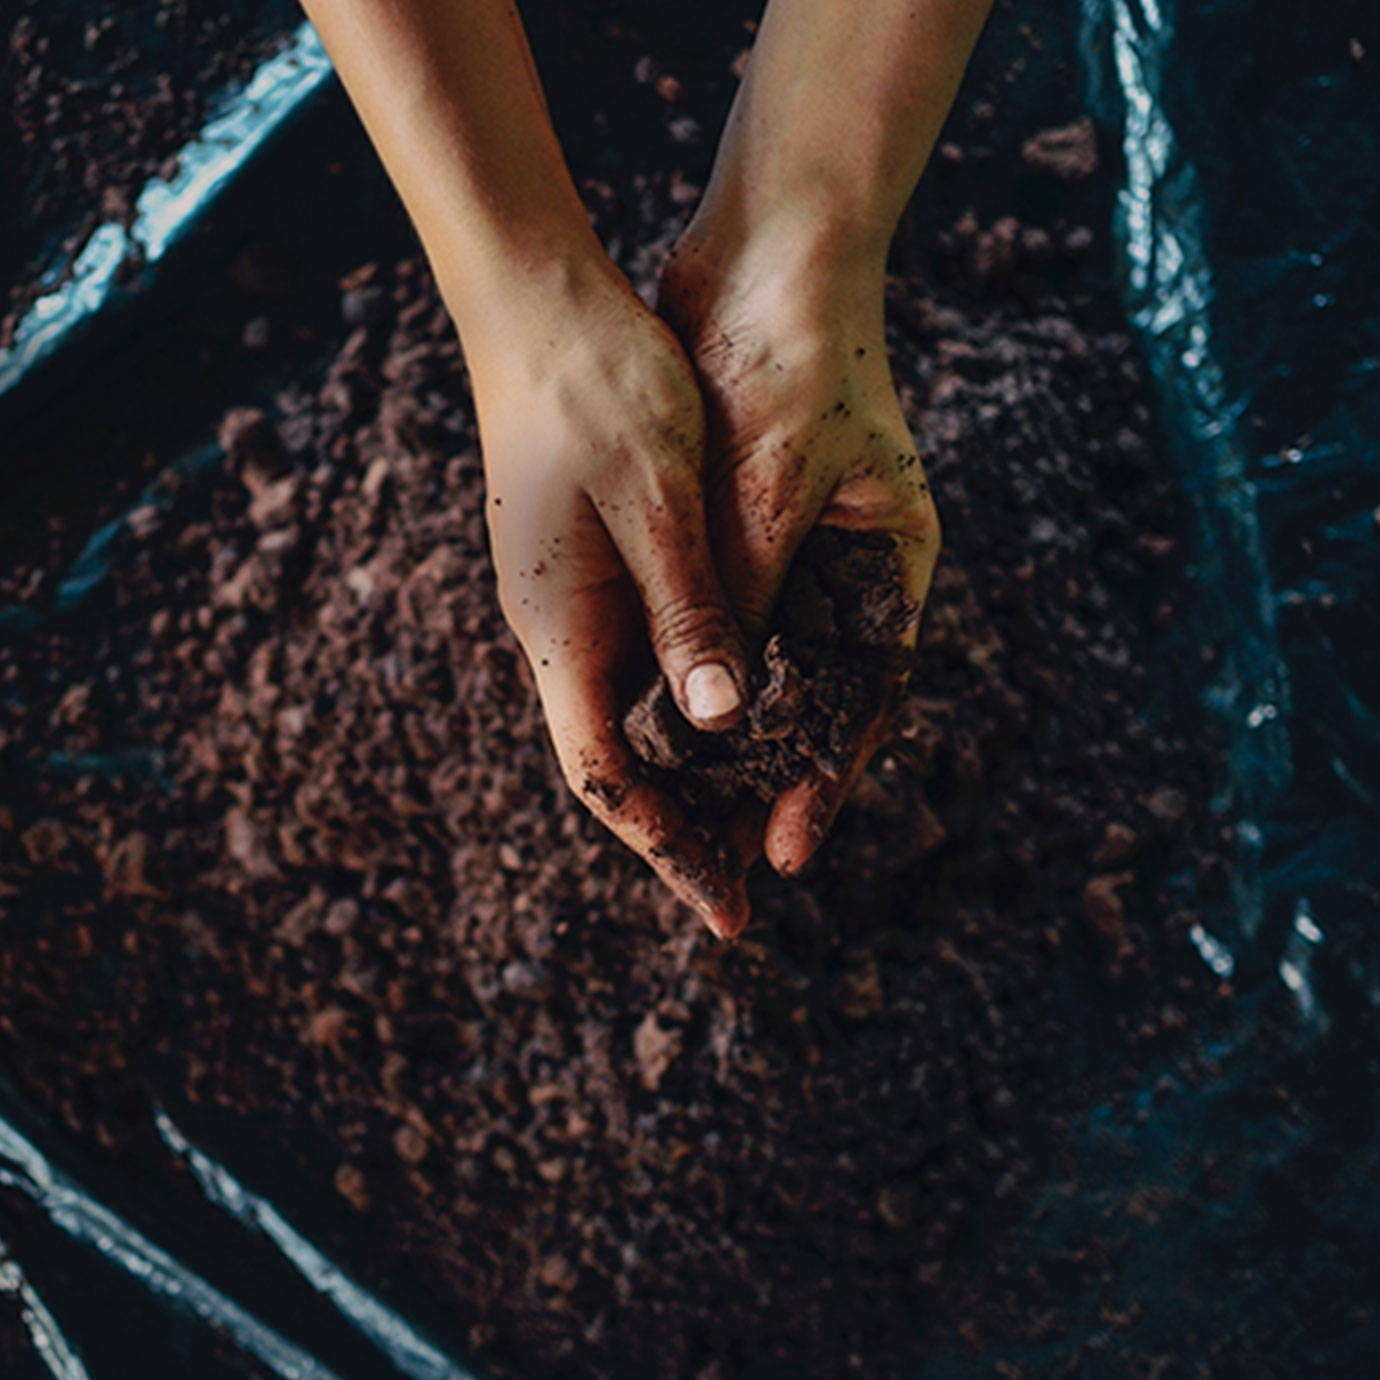 Hands in ground cacao image